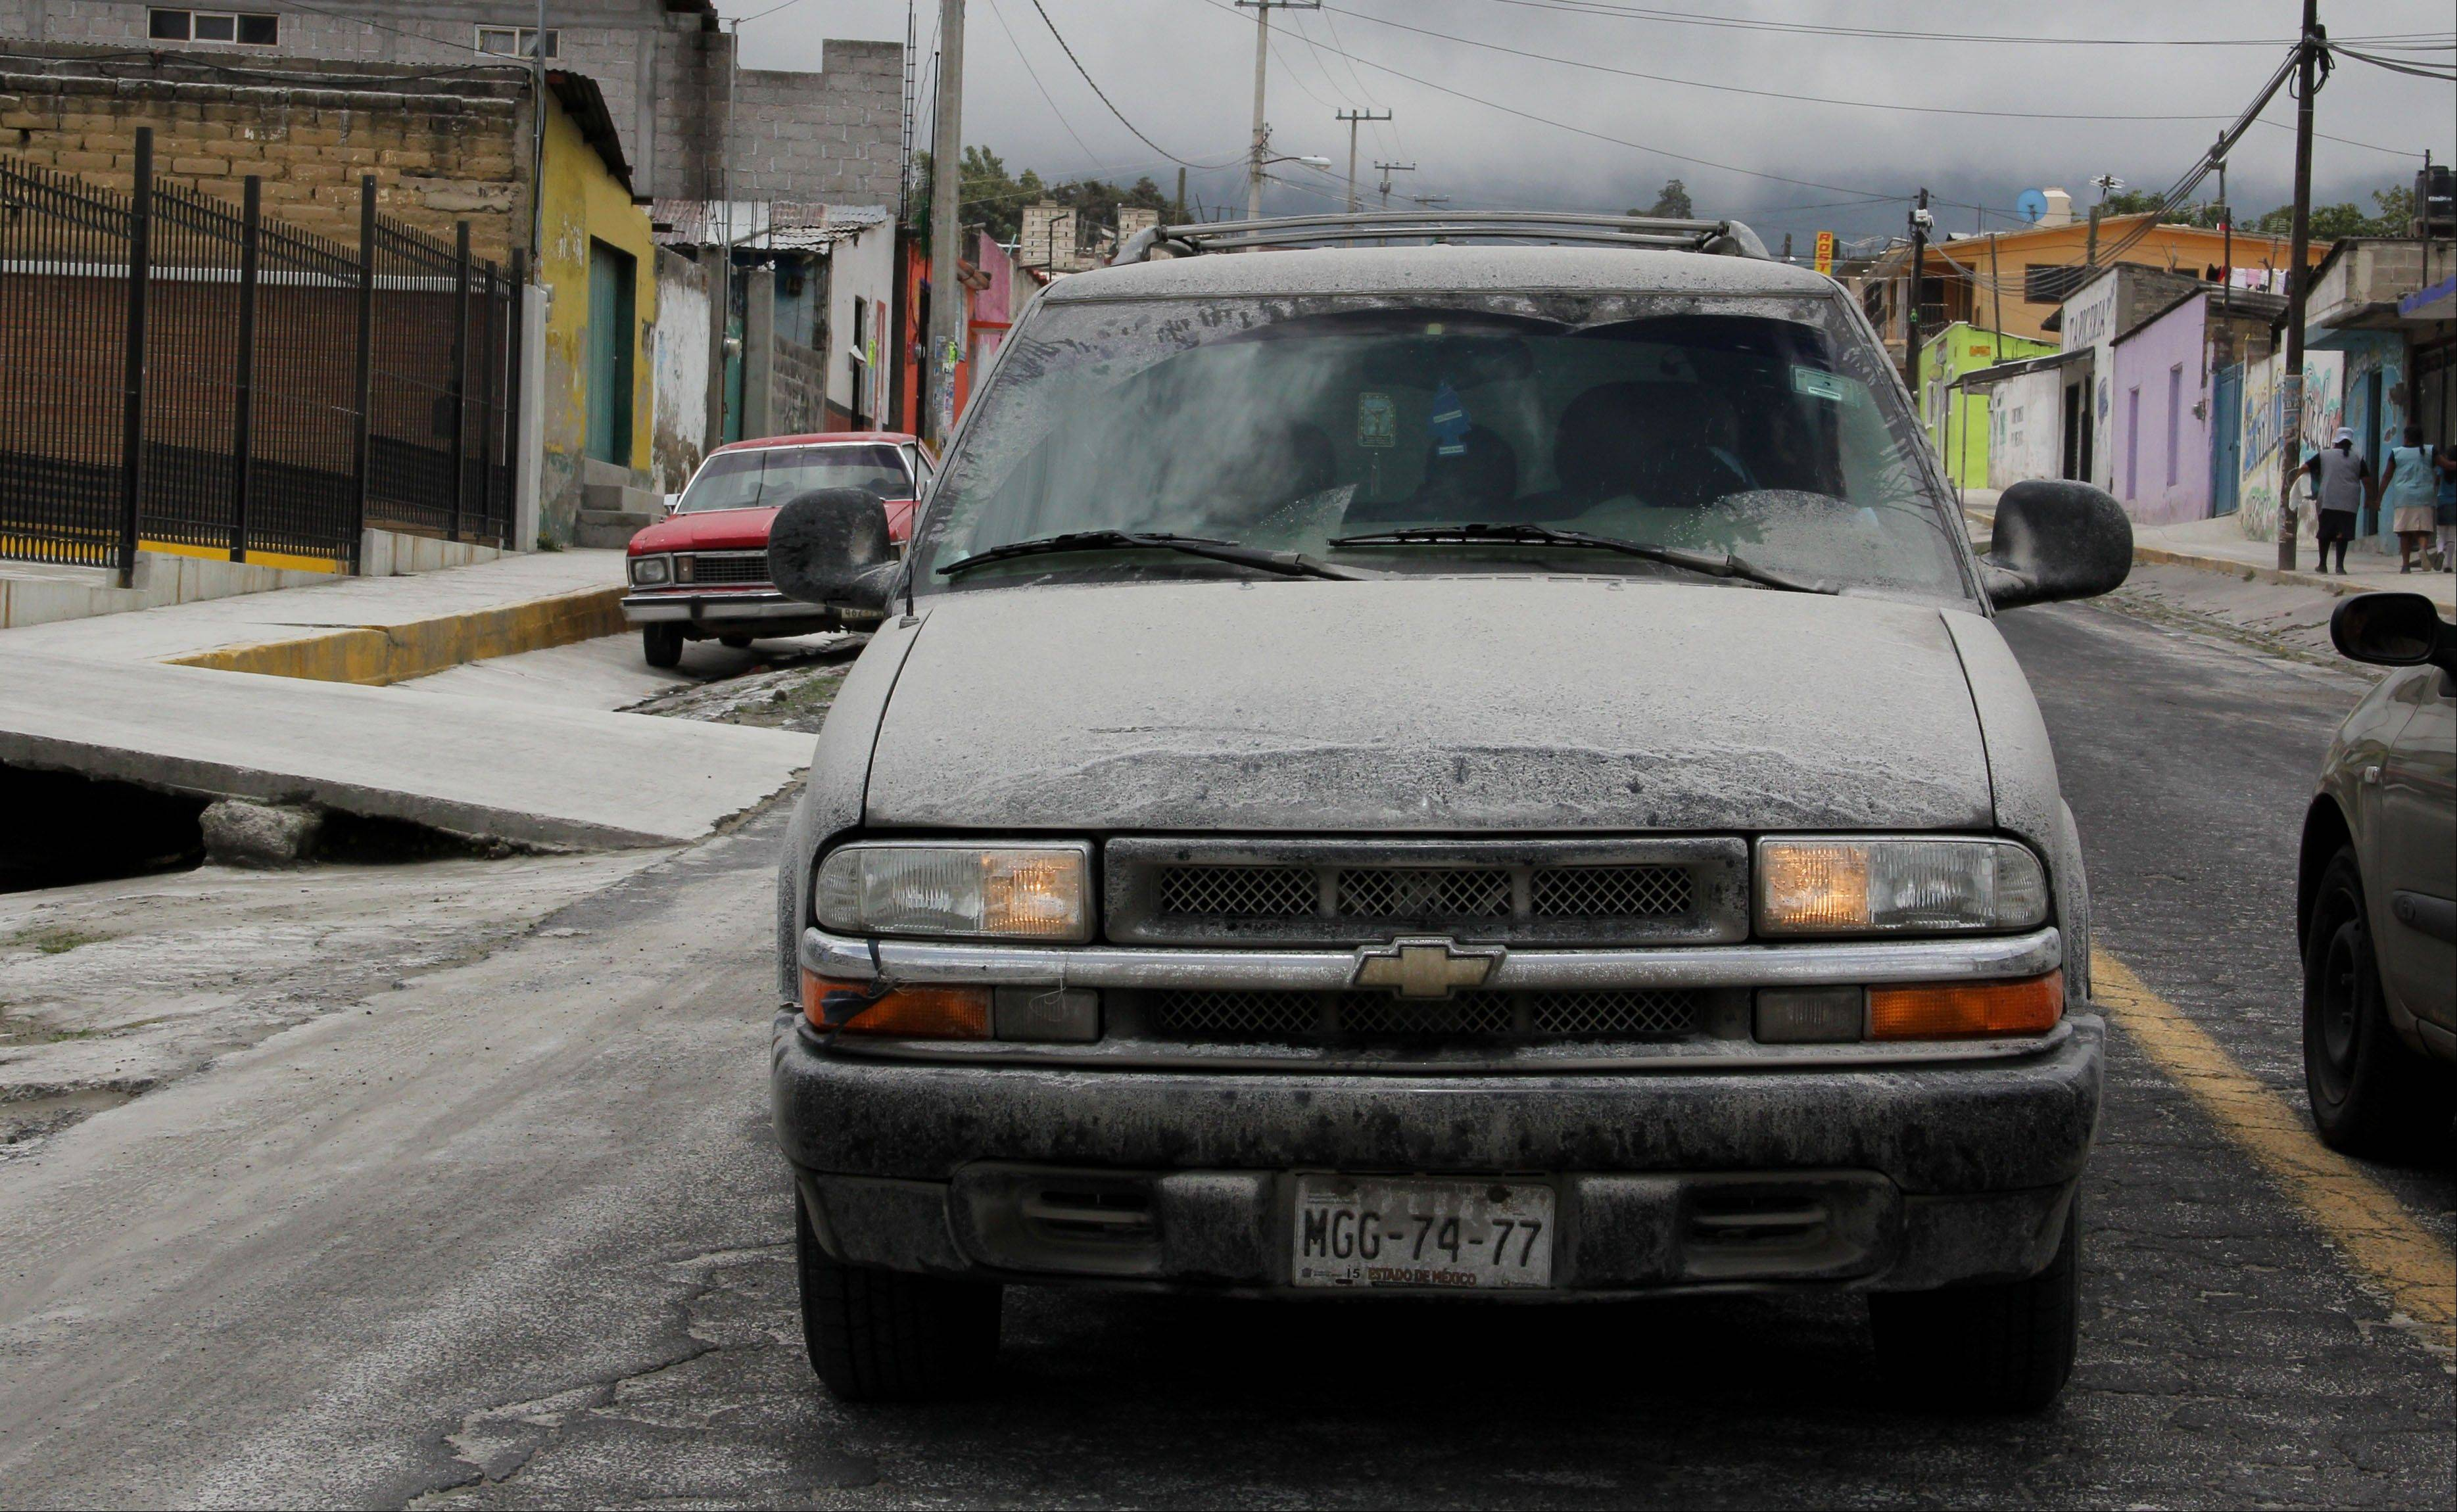 Volcanic ash coats the streets and a vehicle in San Pedro Nexapa, Mexico, Saturday. Just east of Mexico City, the Popocatepetl volcano has spit out a cloud of ash and vapor 2 miles (3 kilometers) high over several days of eruptions.